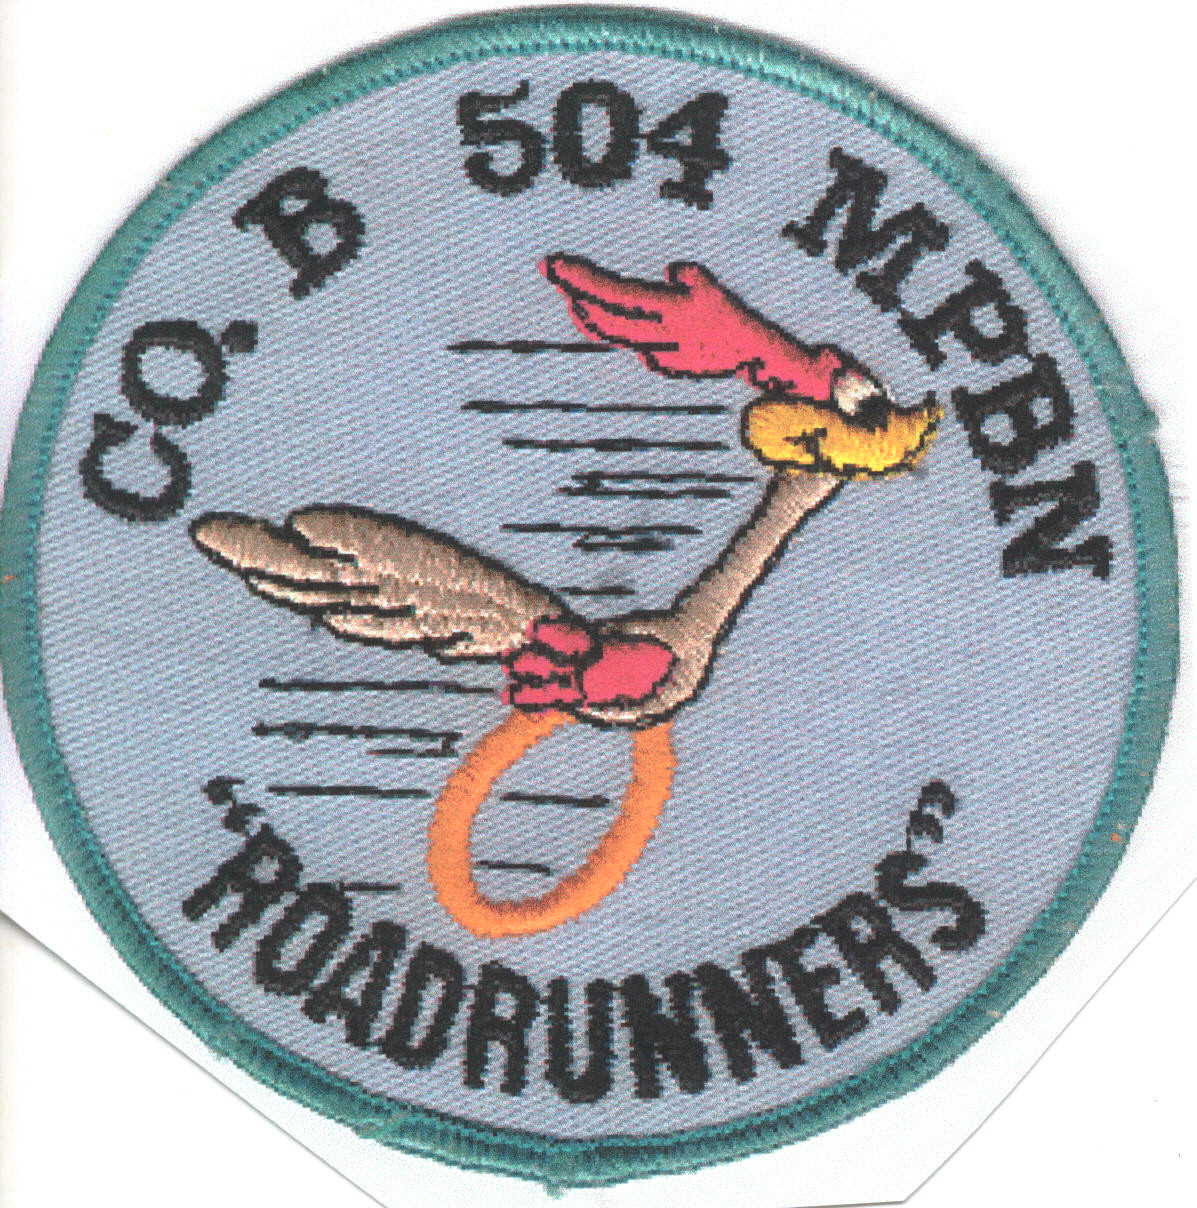 Vietnam-era Military Police Roadrunner patch